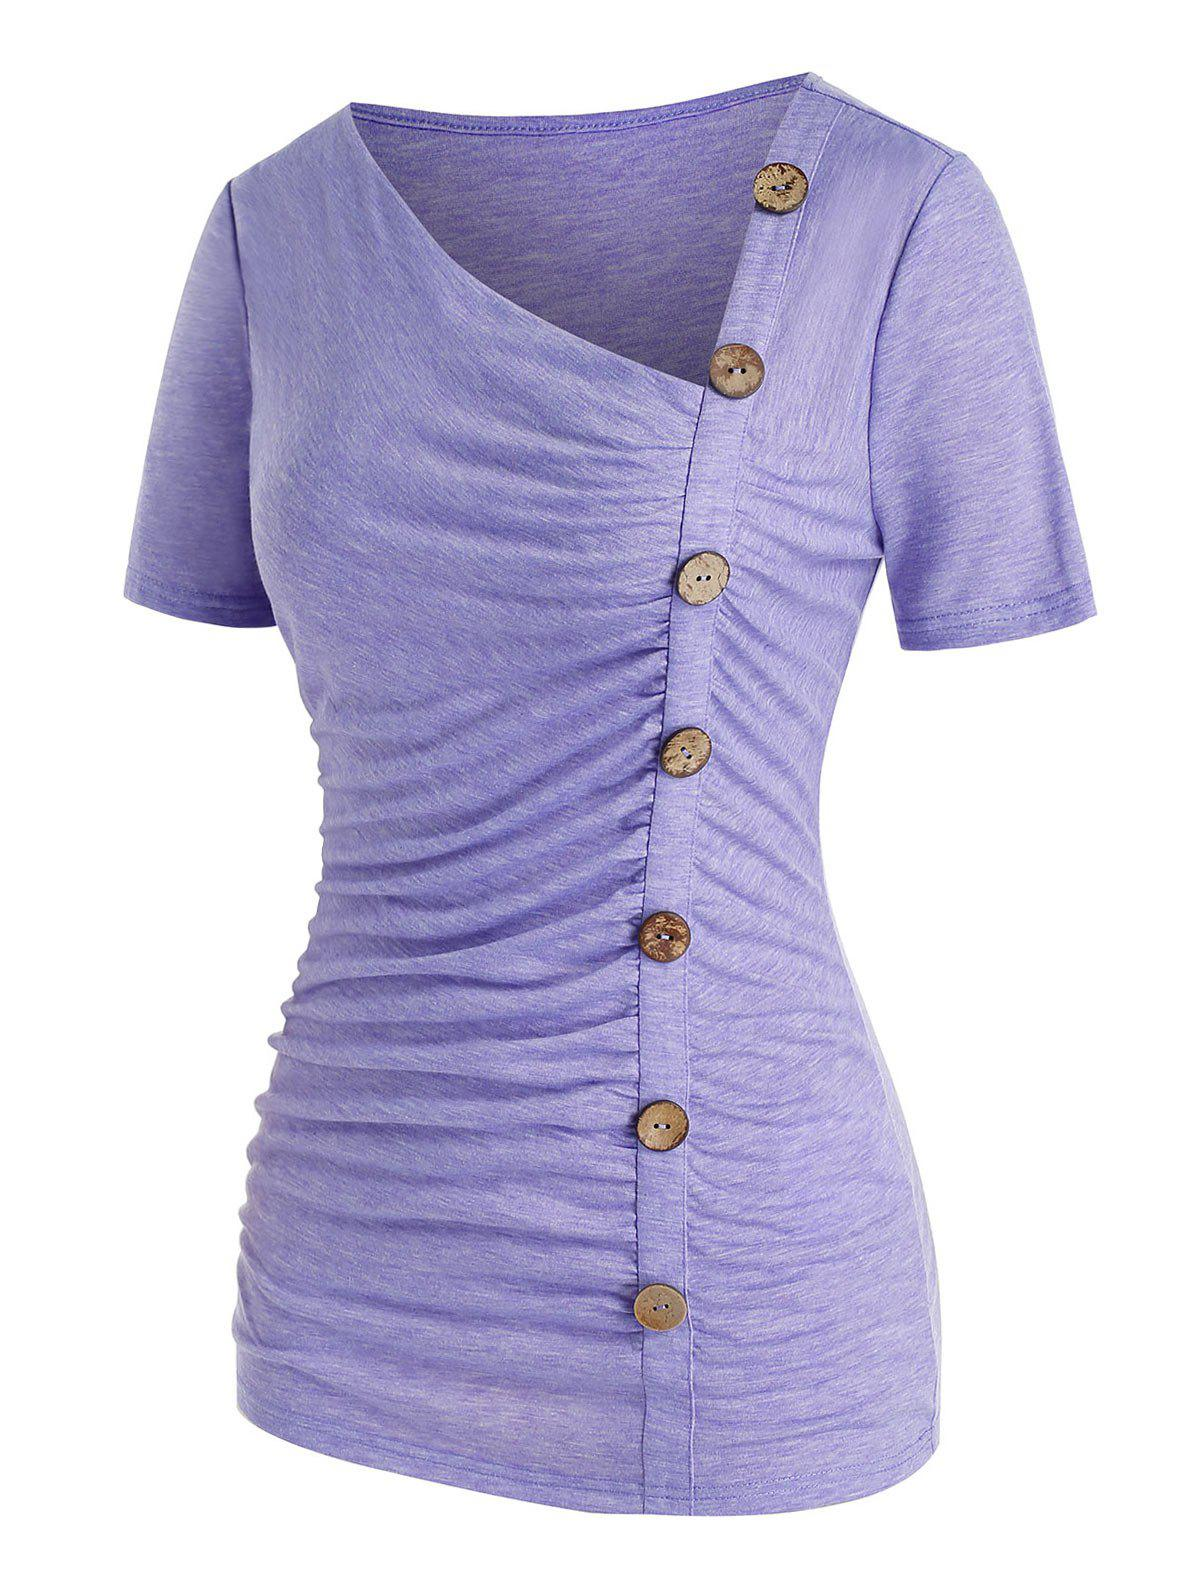 Plus Size Buttons Skew Neck Asymmetric T Shirt - PURPLE 5X